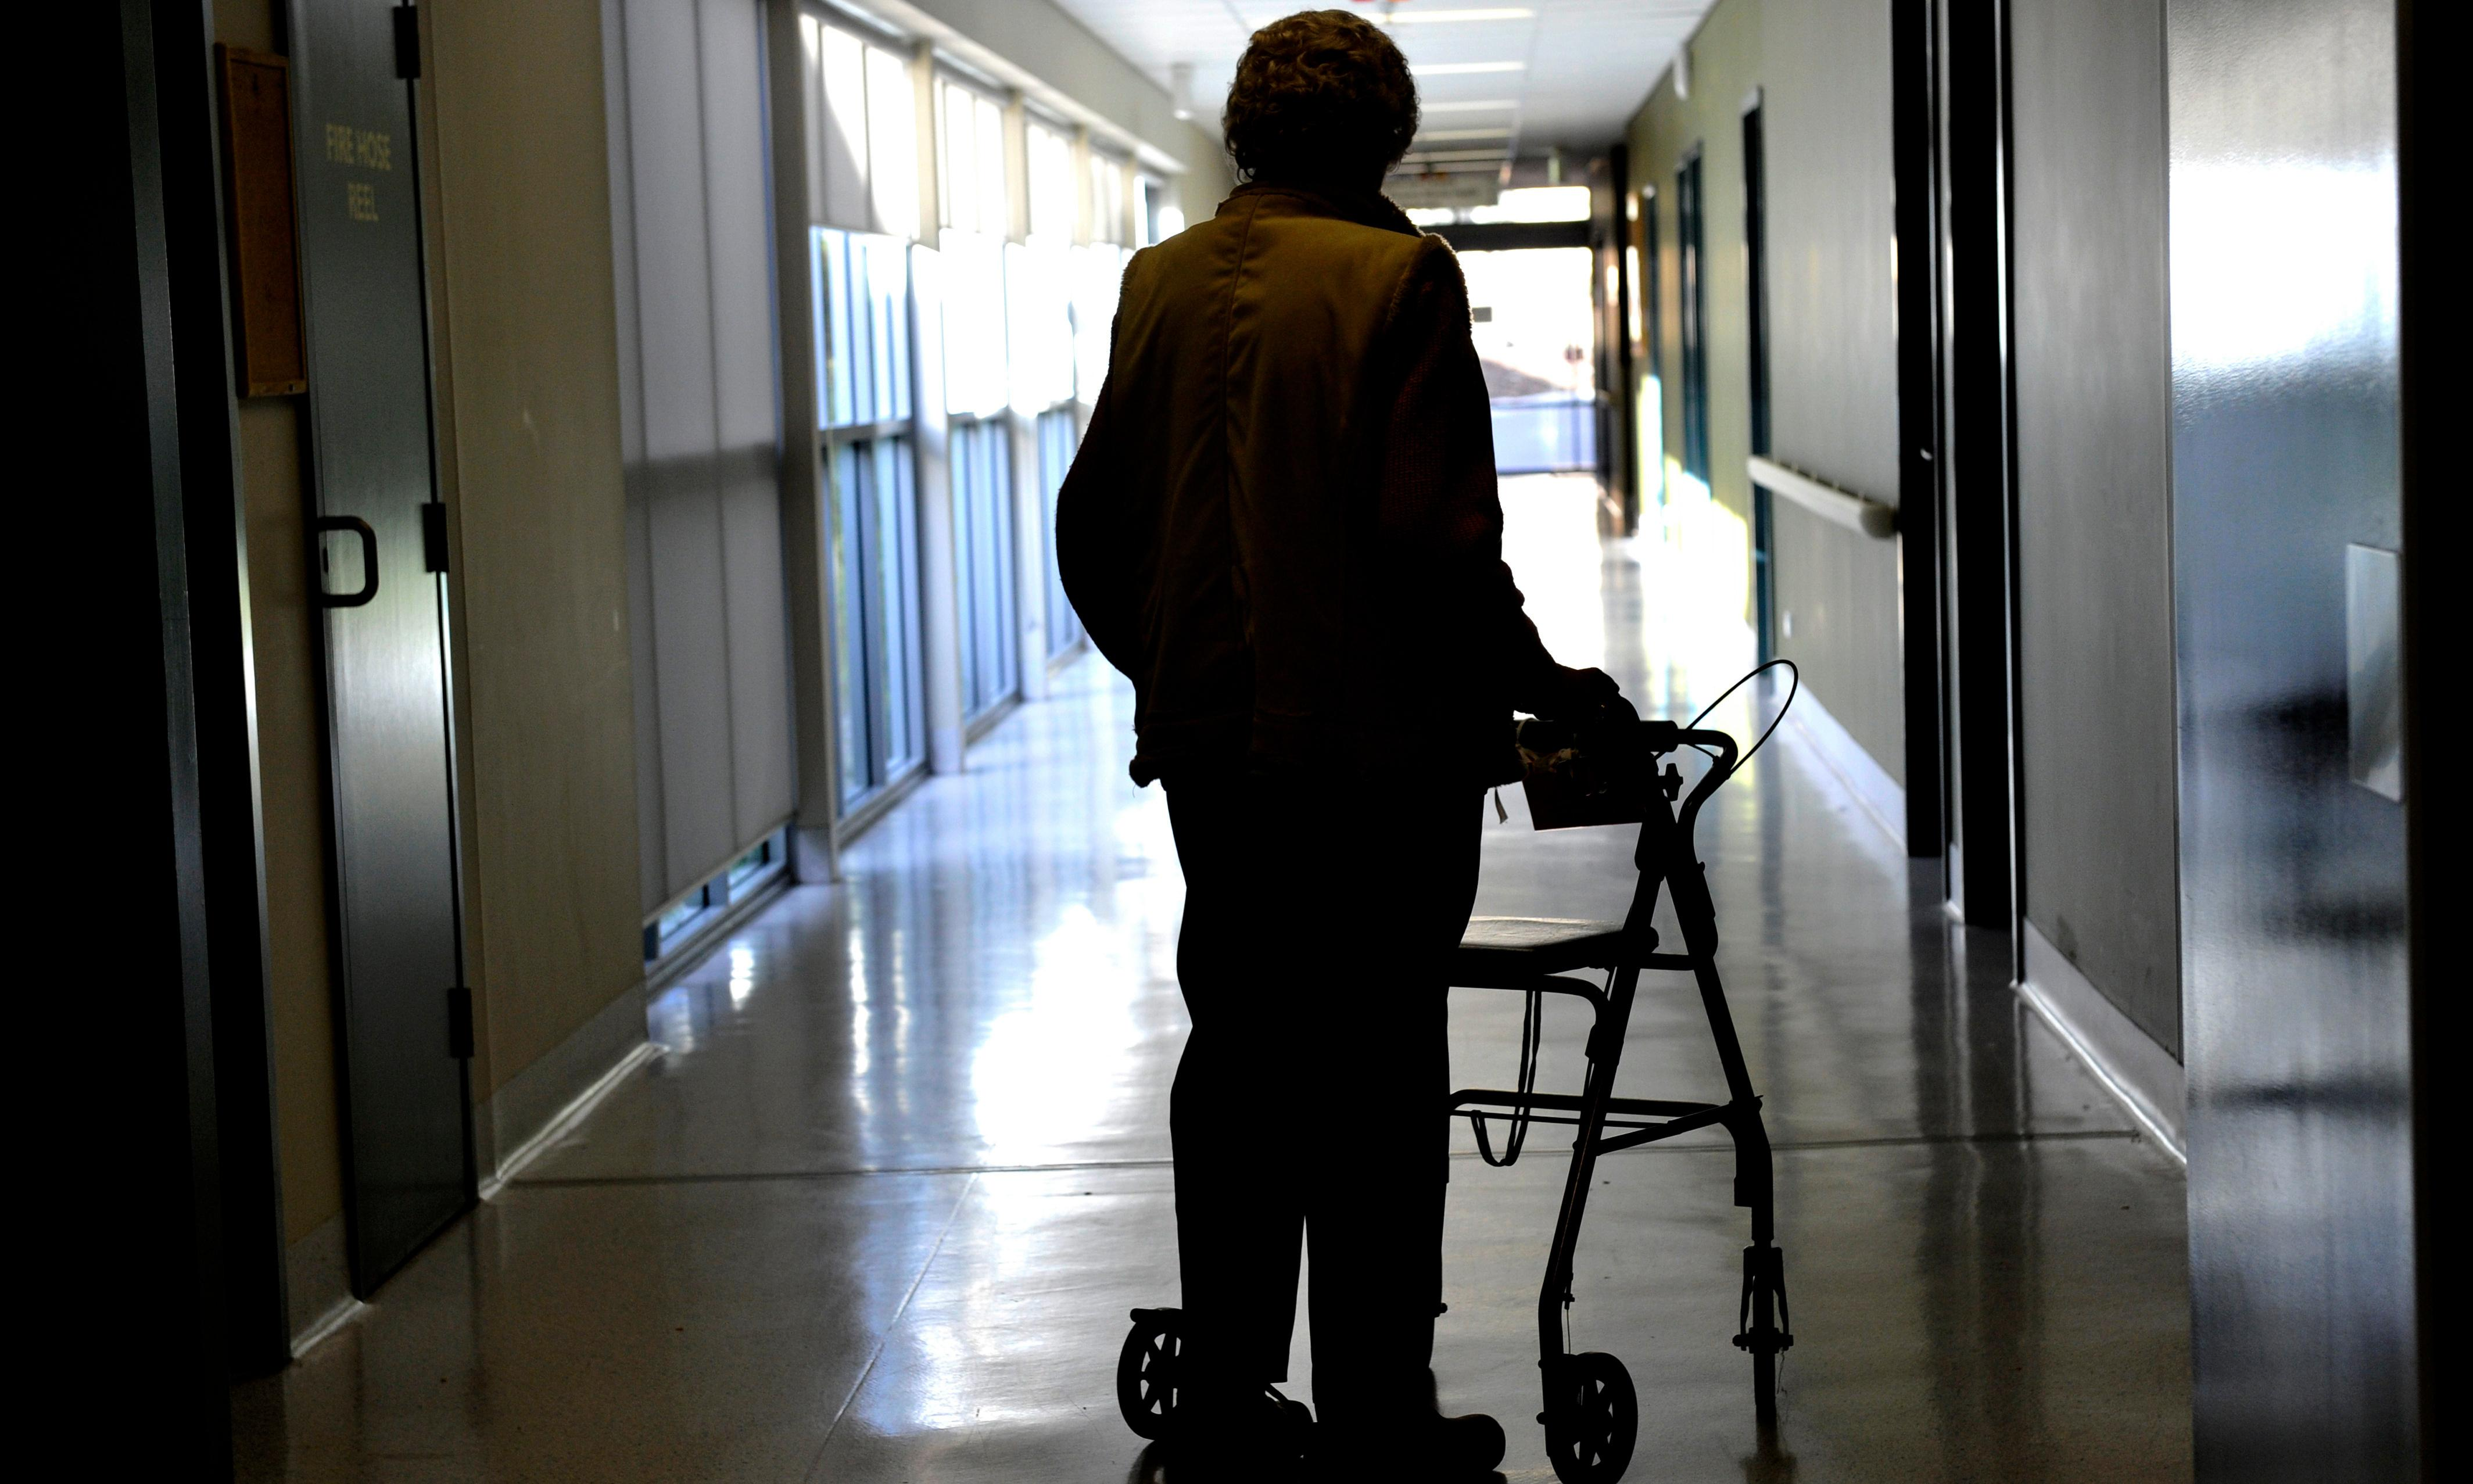 No fresh fish and no respite care: the challenges facing Indigenous aged care